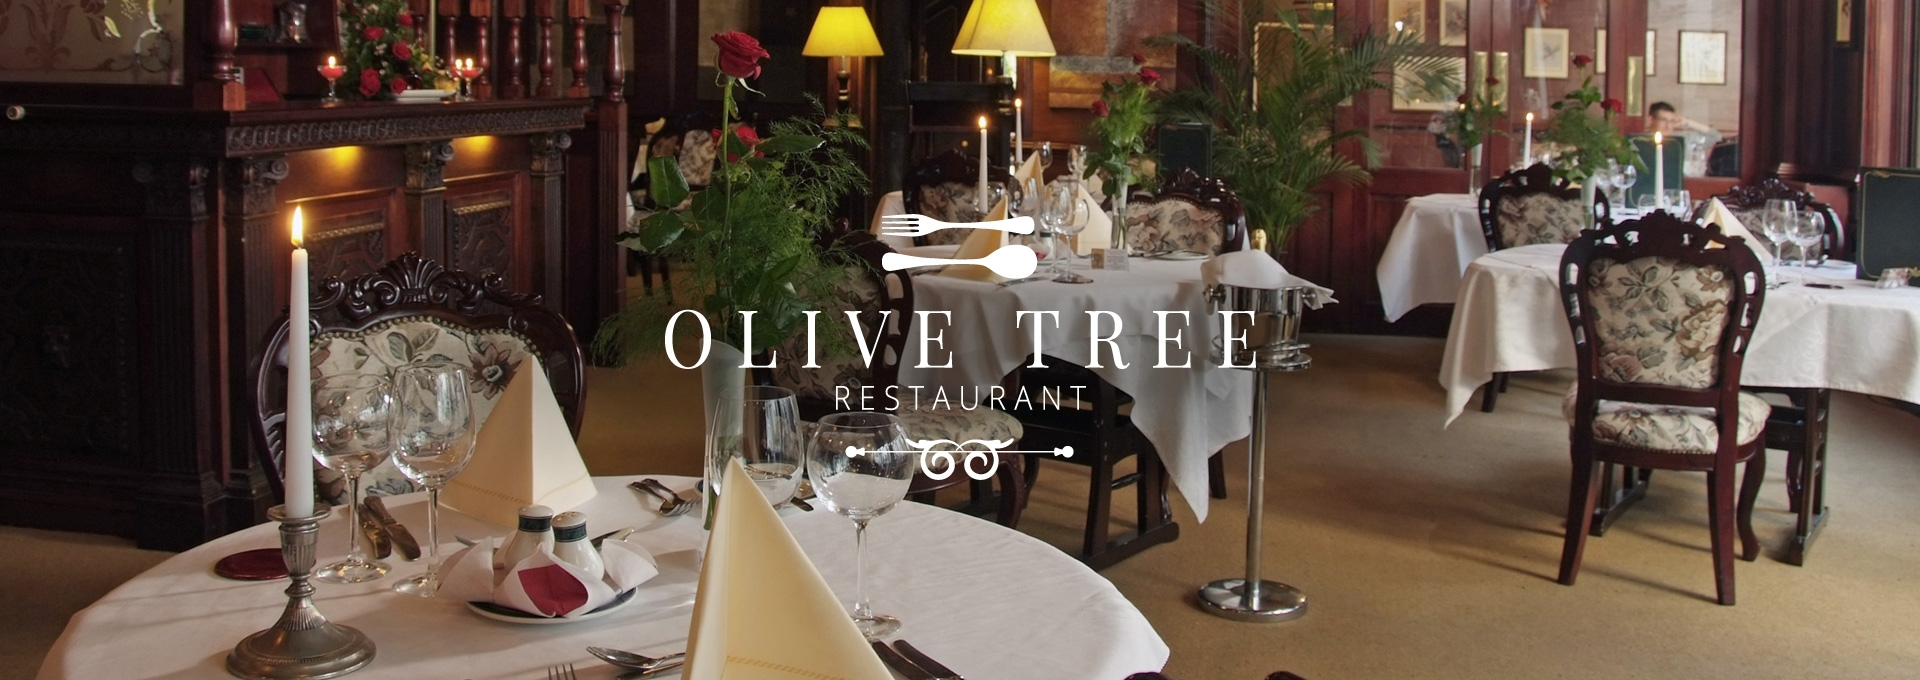 Olive Tree Restaurant at the durrant house hotel in bideford, north devon